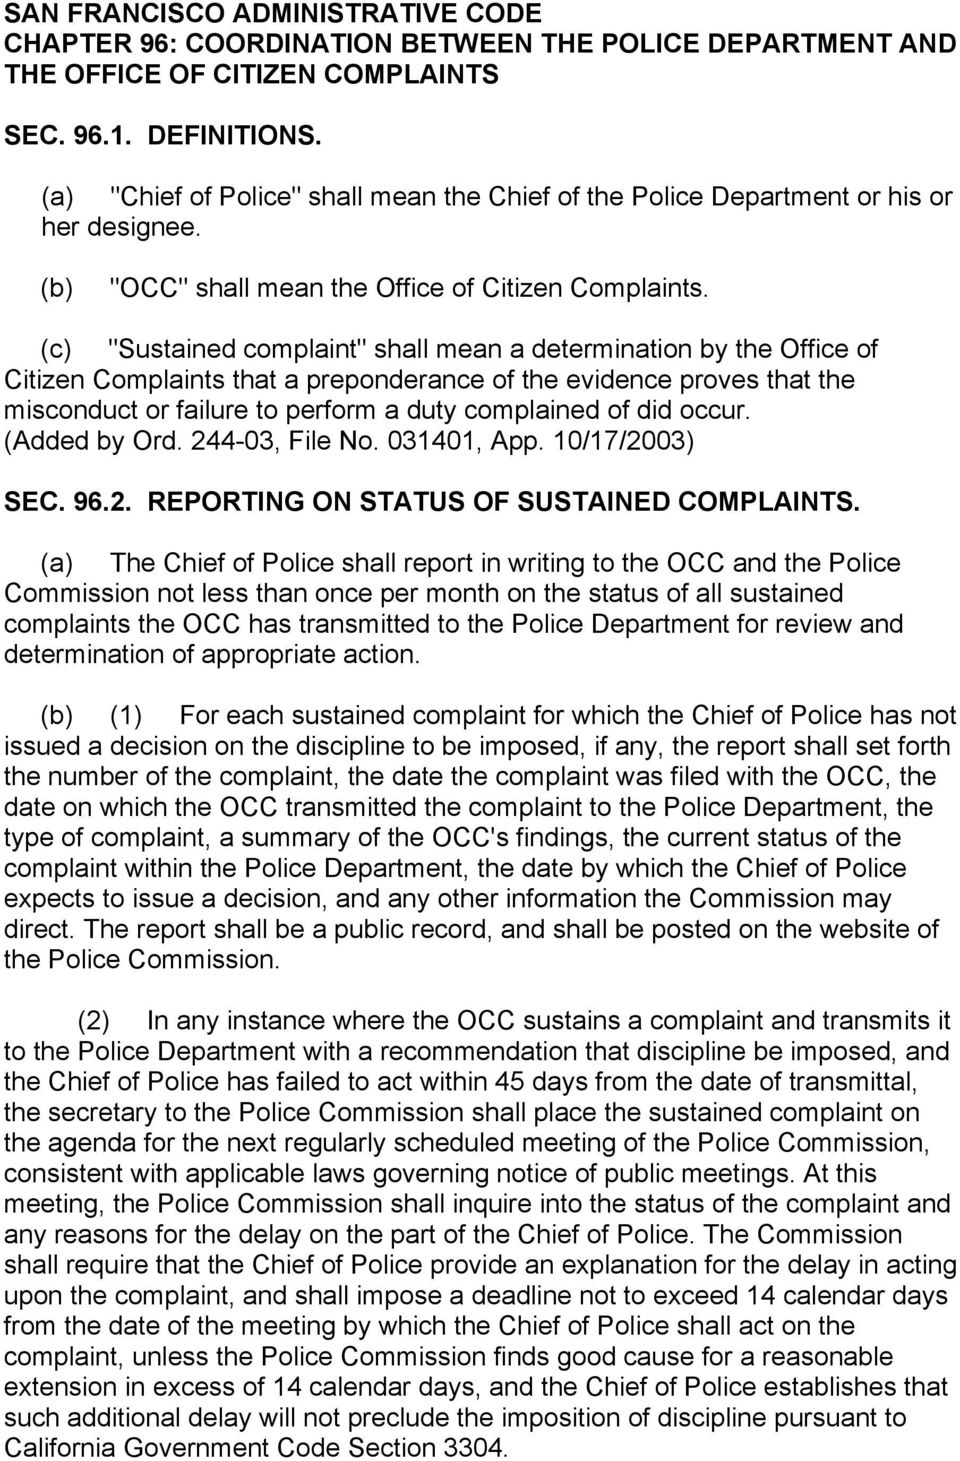 "(c) ""Sustained complaint"" shall mean a determination by the Office of Citizen Complaints that a preponderance of the evidence proves that the misconduct or failure to perform a duty complained of did"